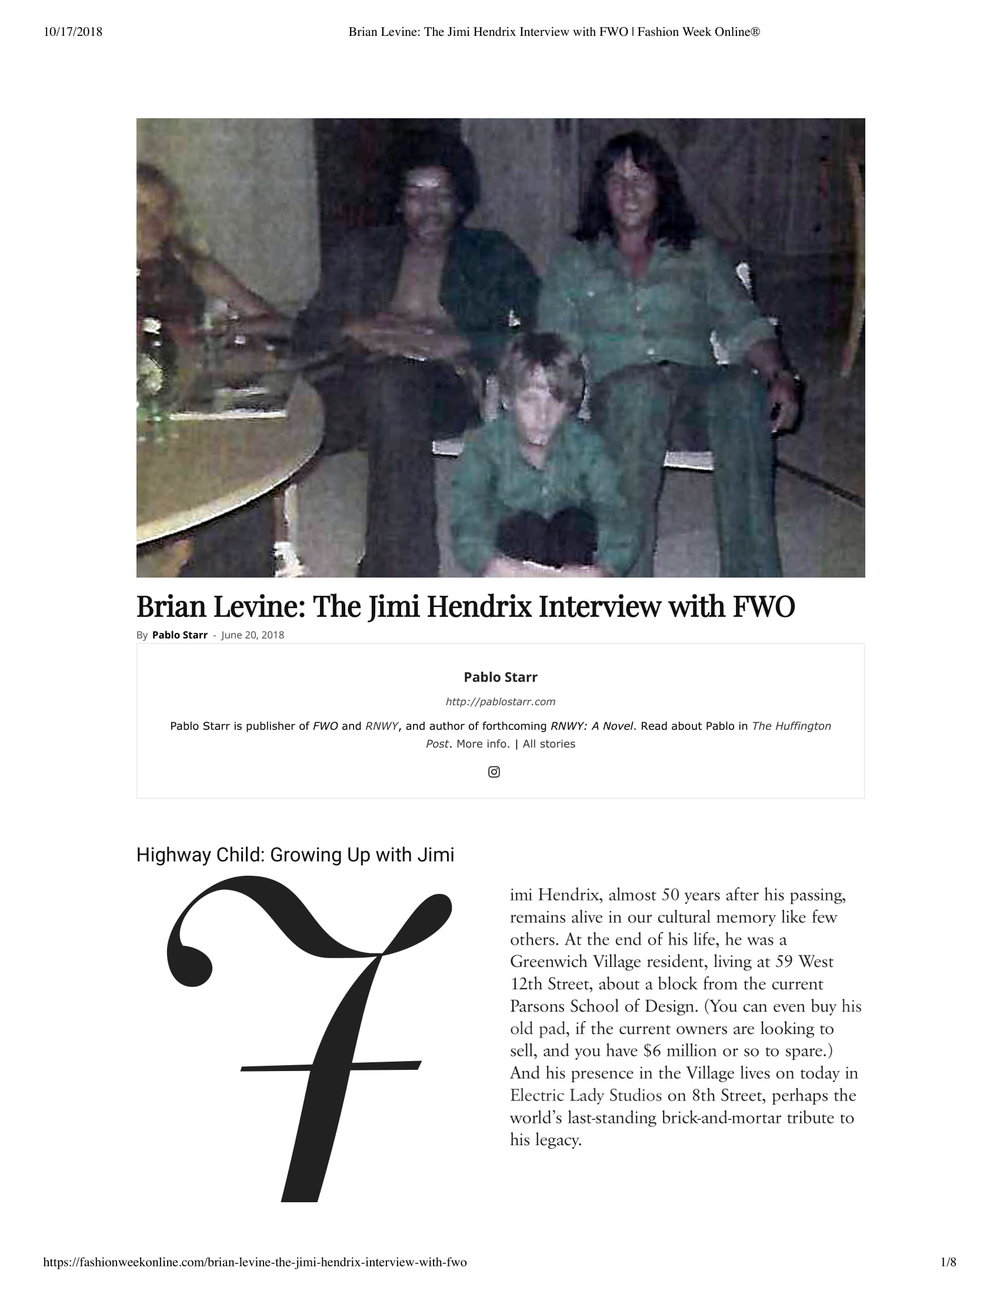 Brian Levine_ The Jimi Hendrix Interview with FWO _ Fashion Week Online®-1.jpg